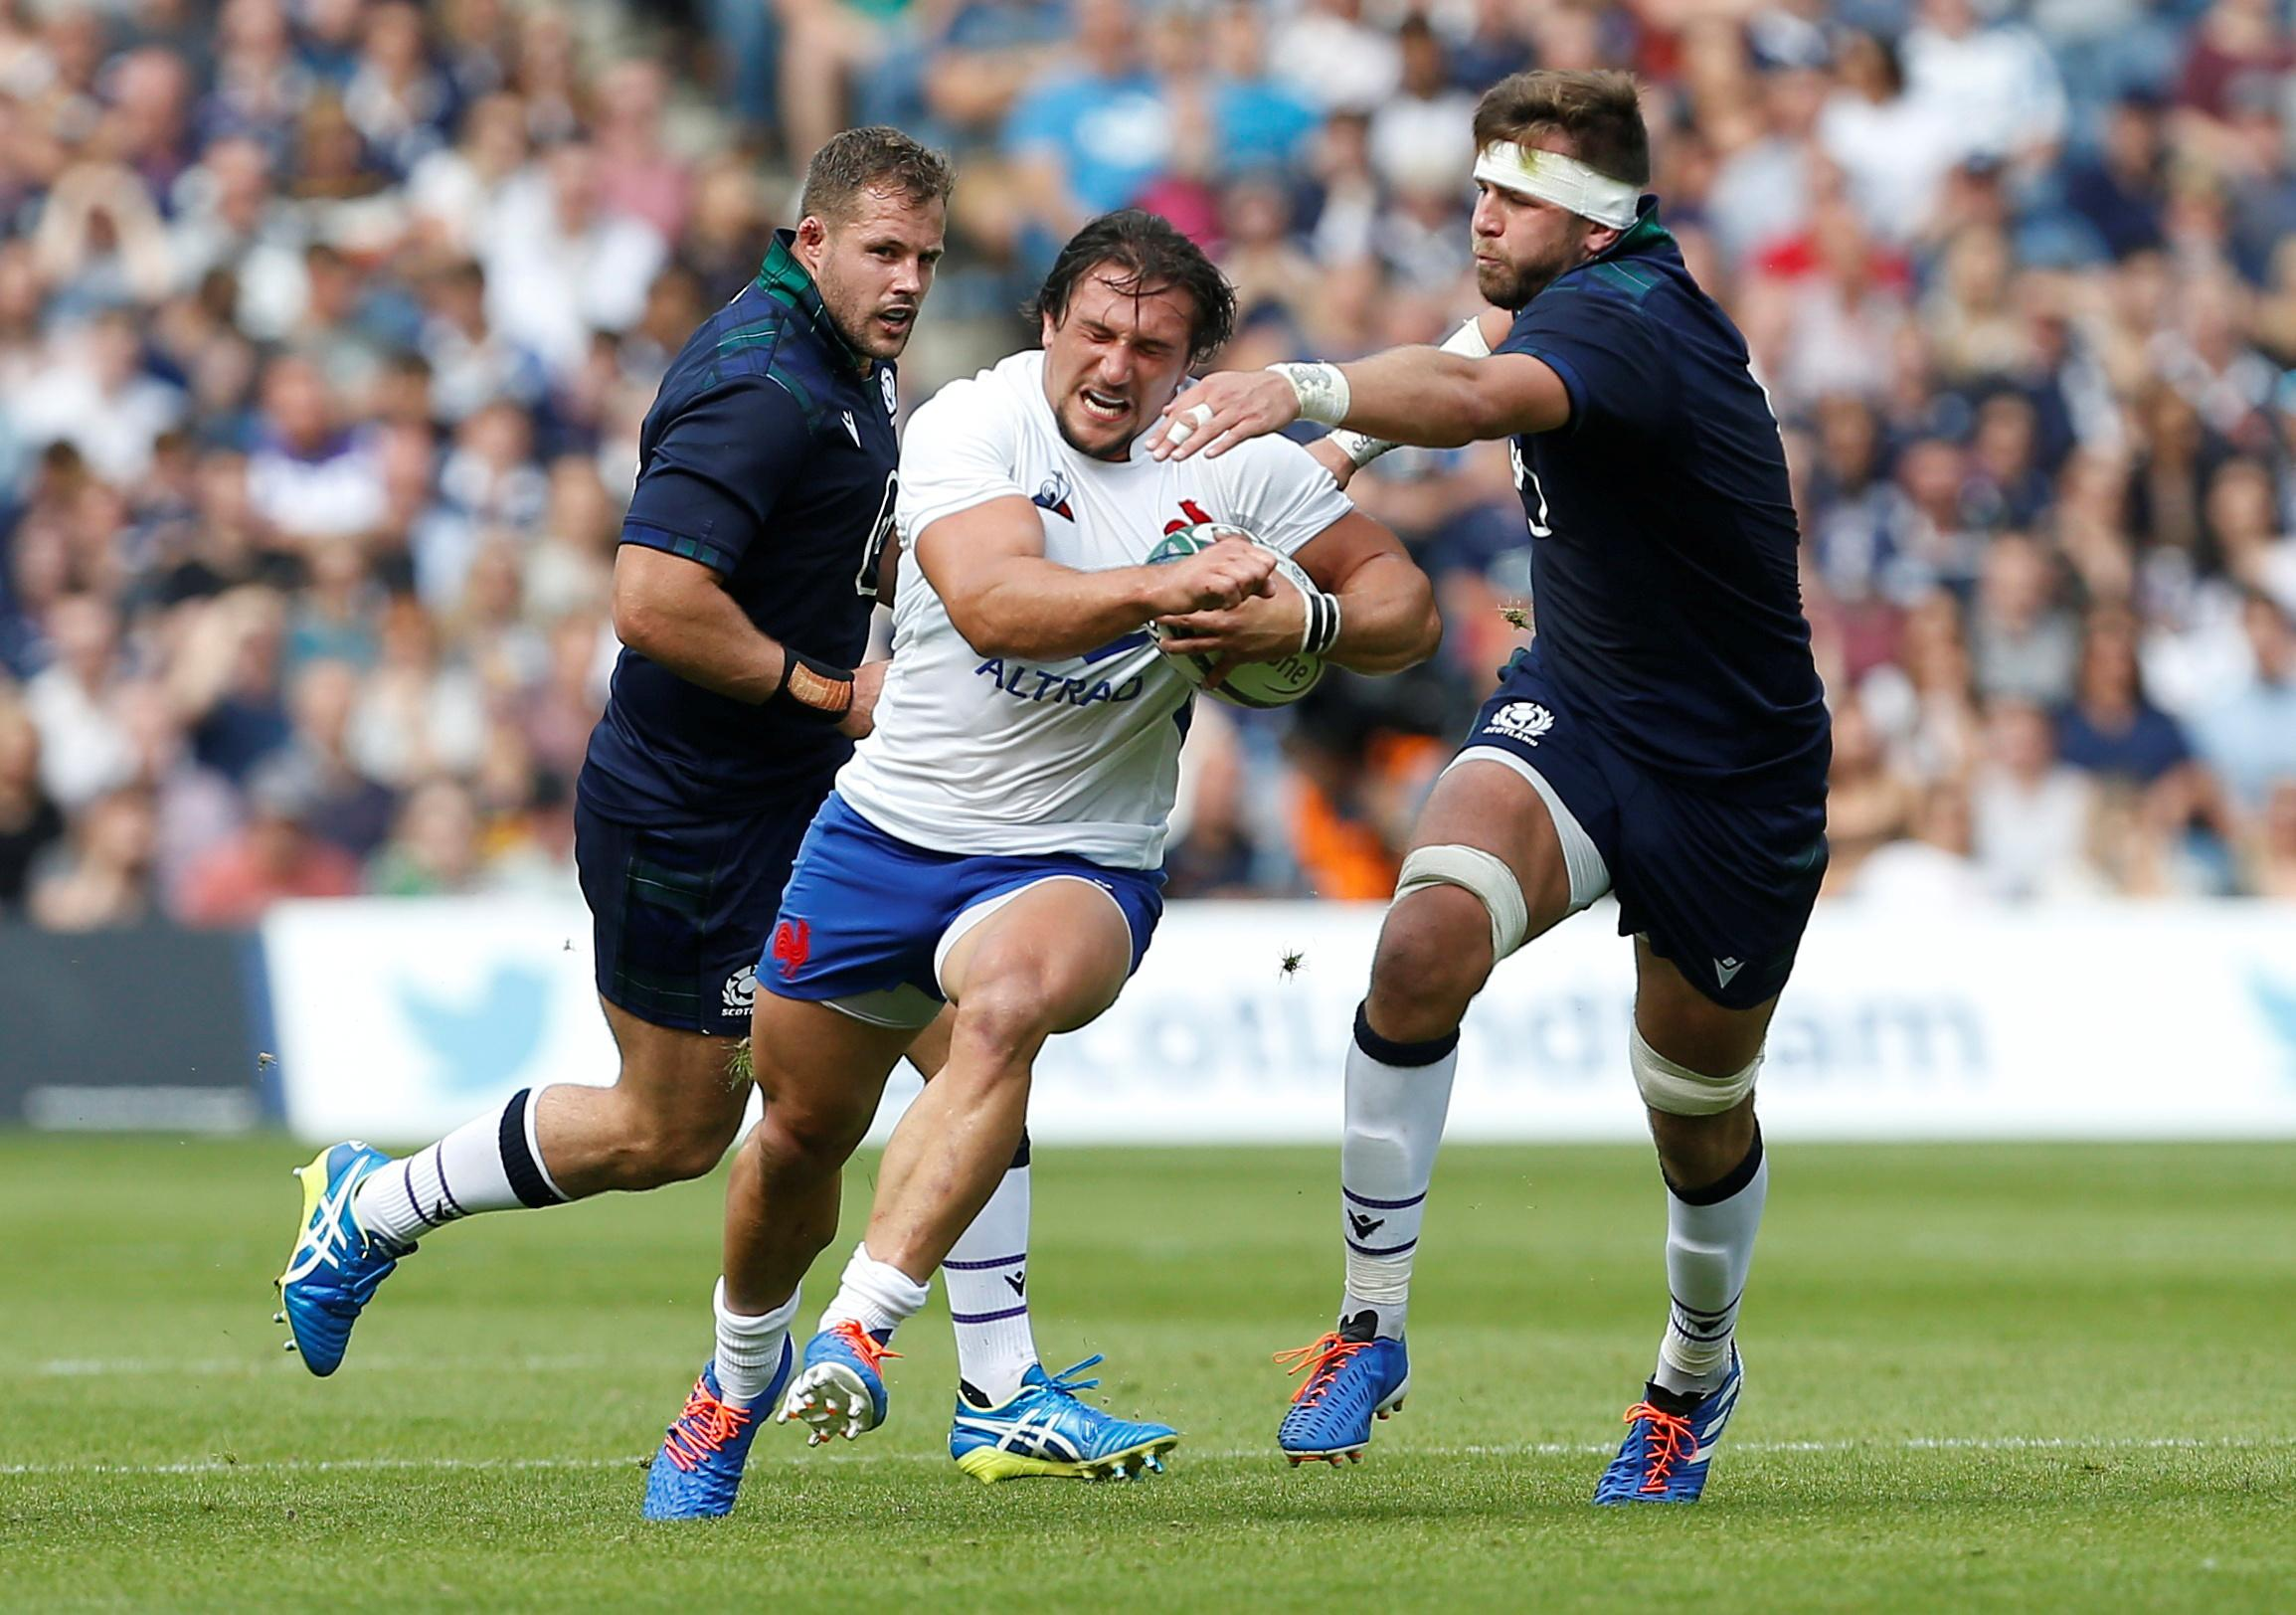 Rugby: Chat's injury leaves French front row under cosh for England...